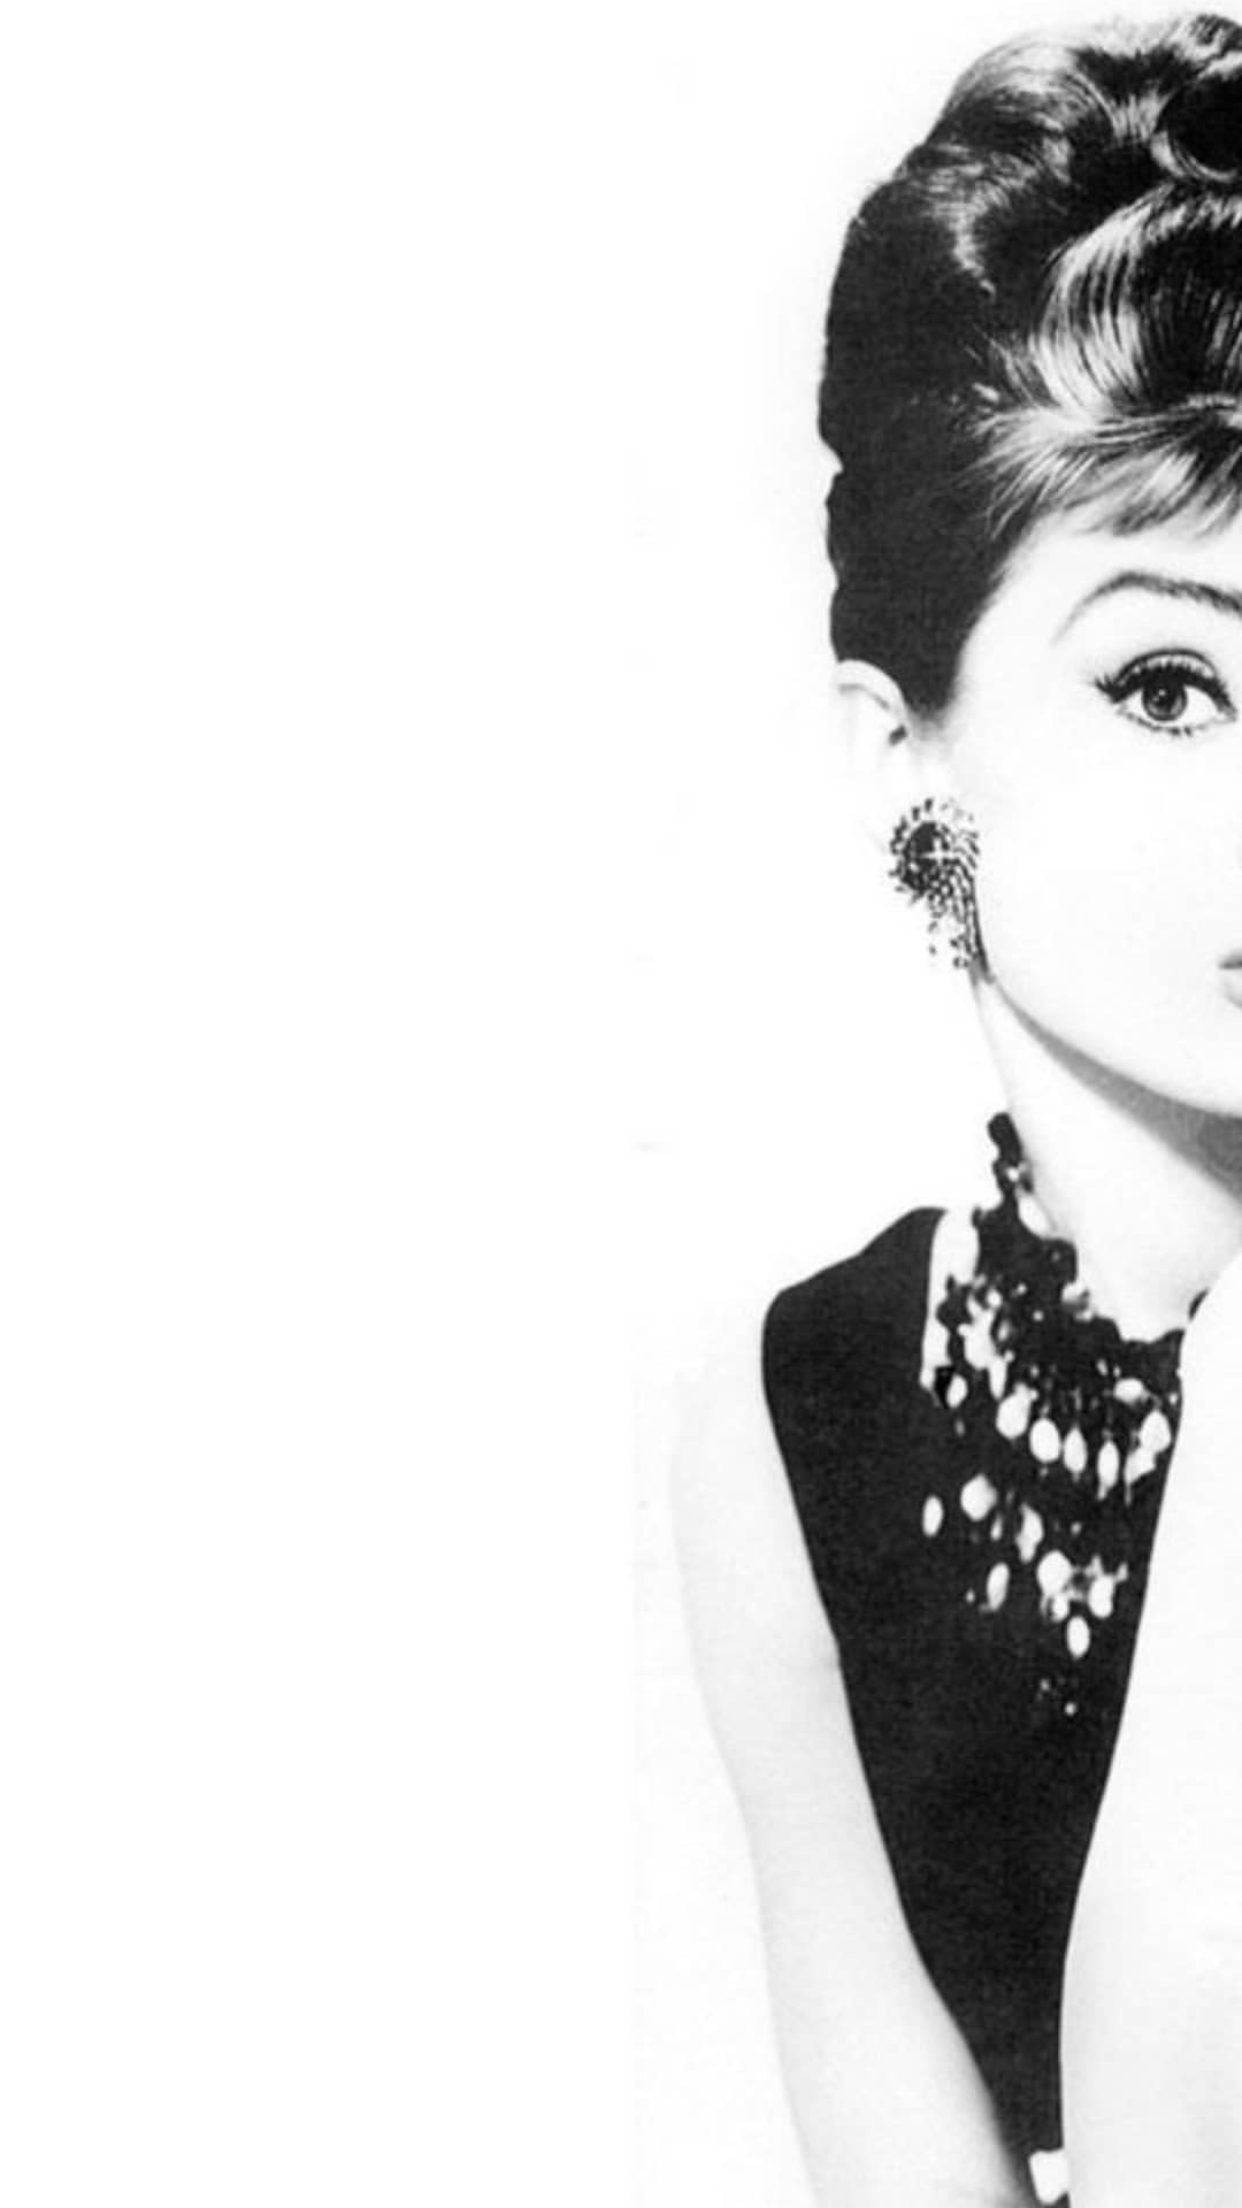 Pin By Bashaiir 94 On Mahla Iphone 6 Plus Wallpaper Chanel Wallpapers Audrey Hepburn Wallpaper